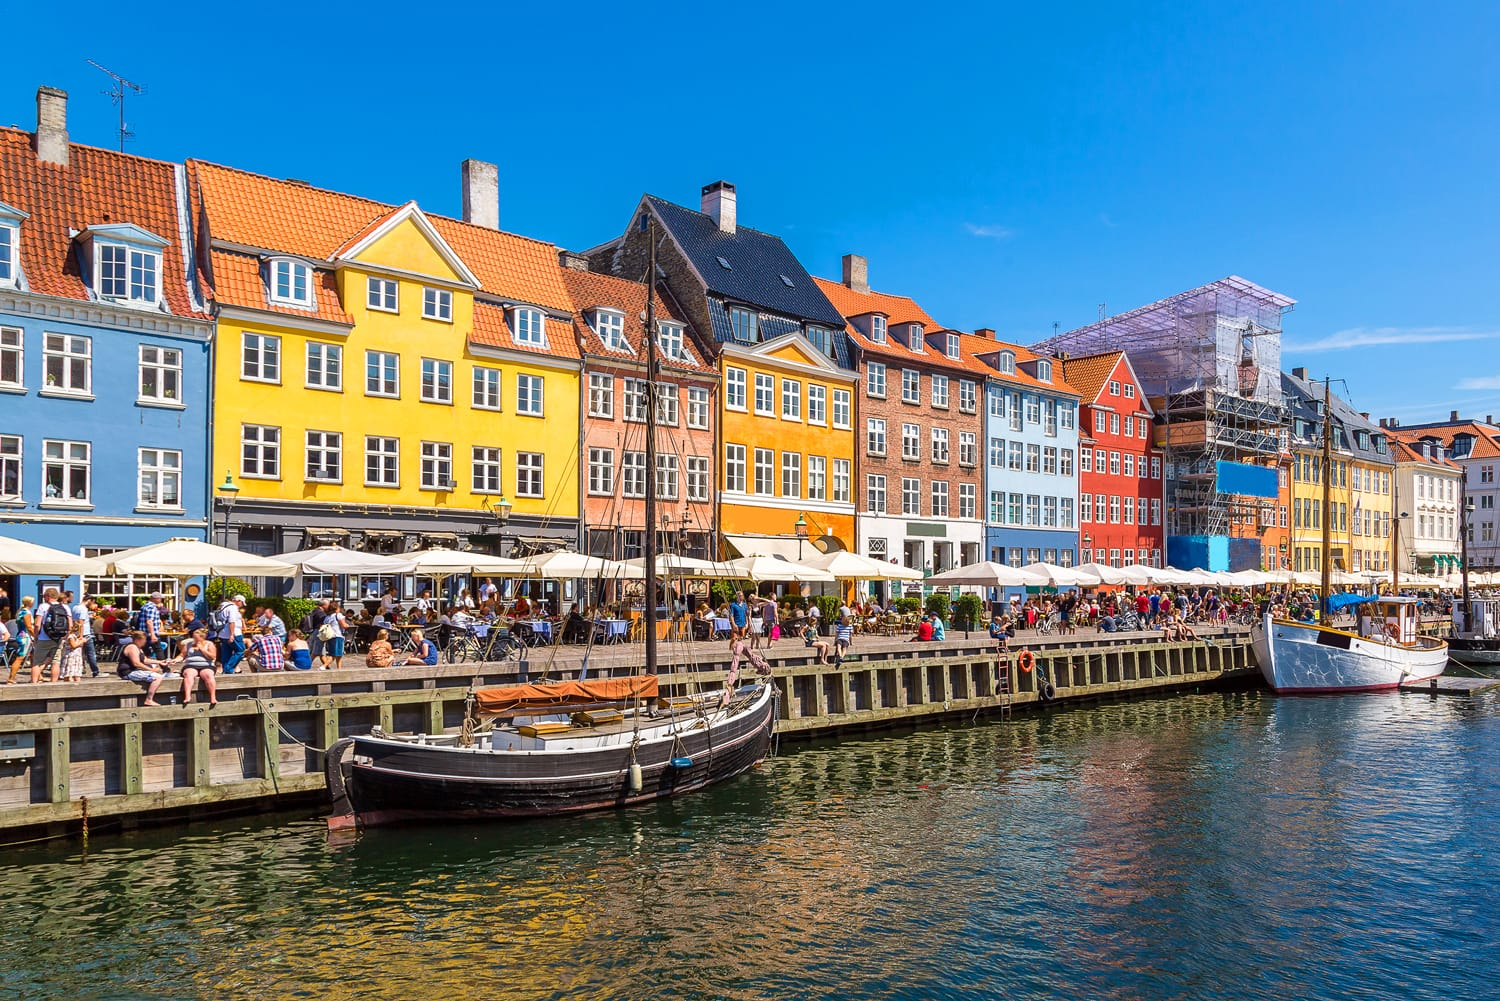 Nyhavn district is one of the most famous landmark in Copenhagen in a summer day